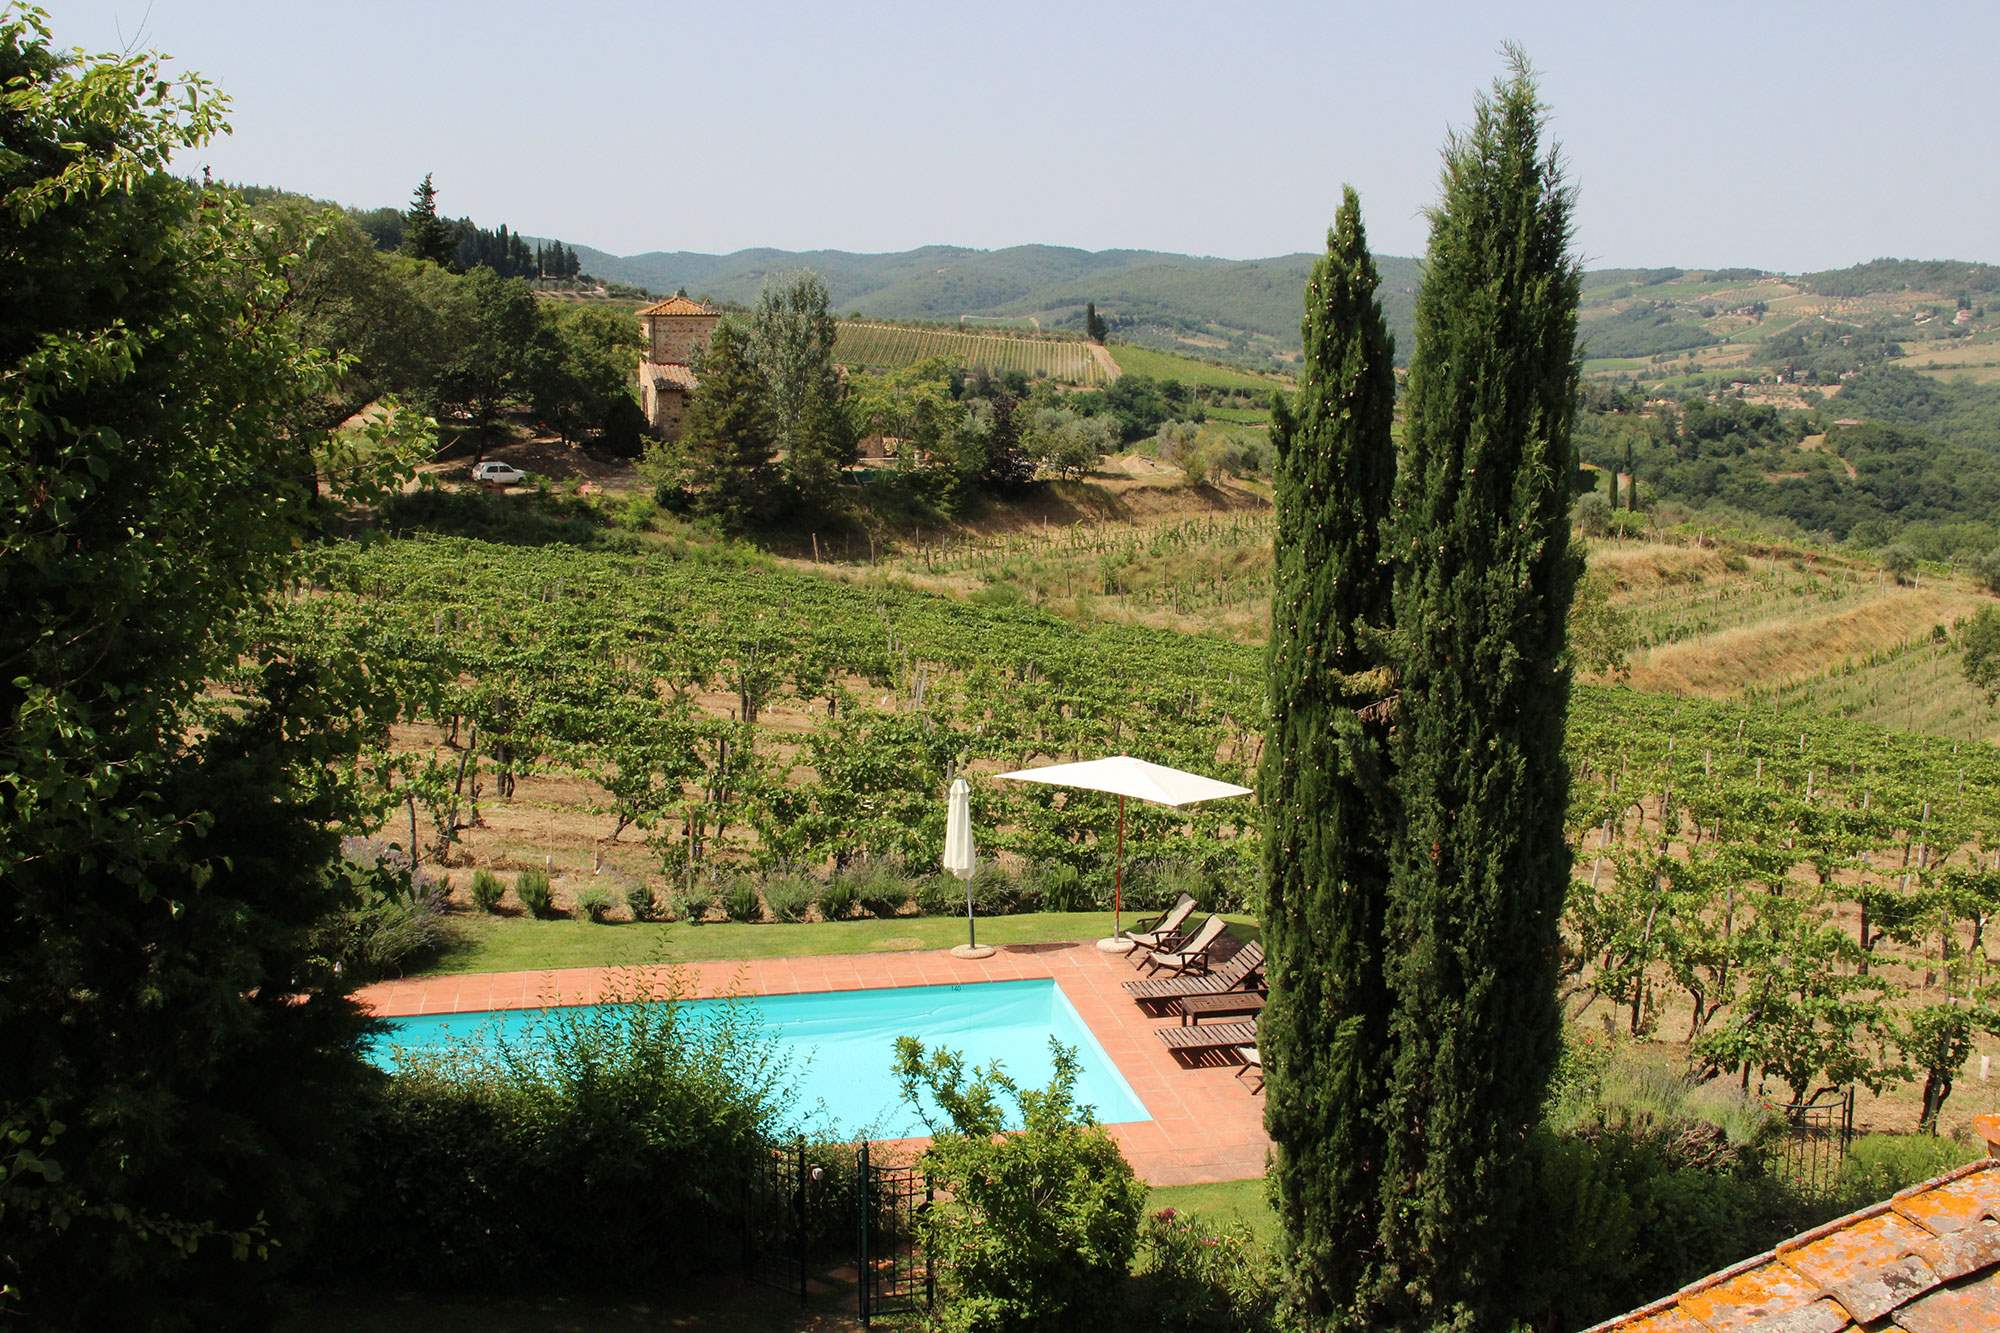 Casa Ferruzzi 2, 3 bedroom apartment in Chianti & Countryside, Tuscany Photo #23